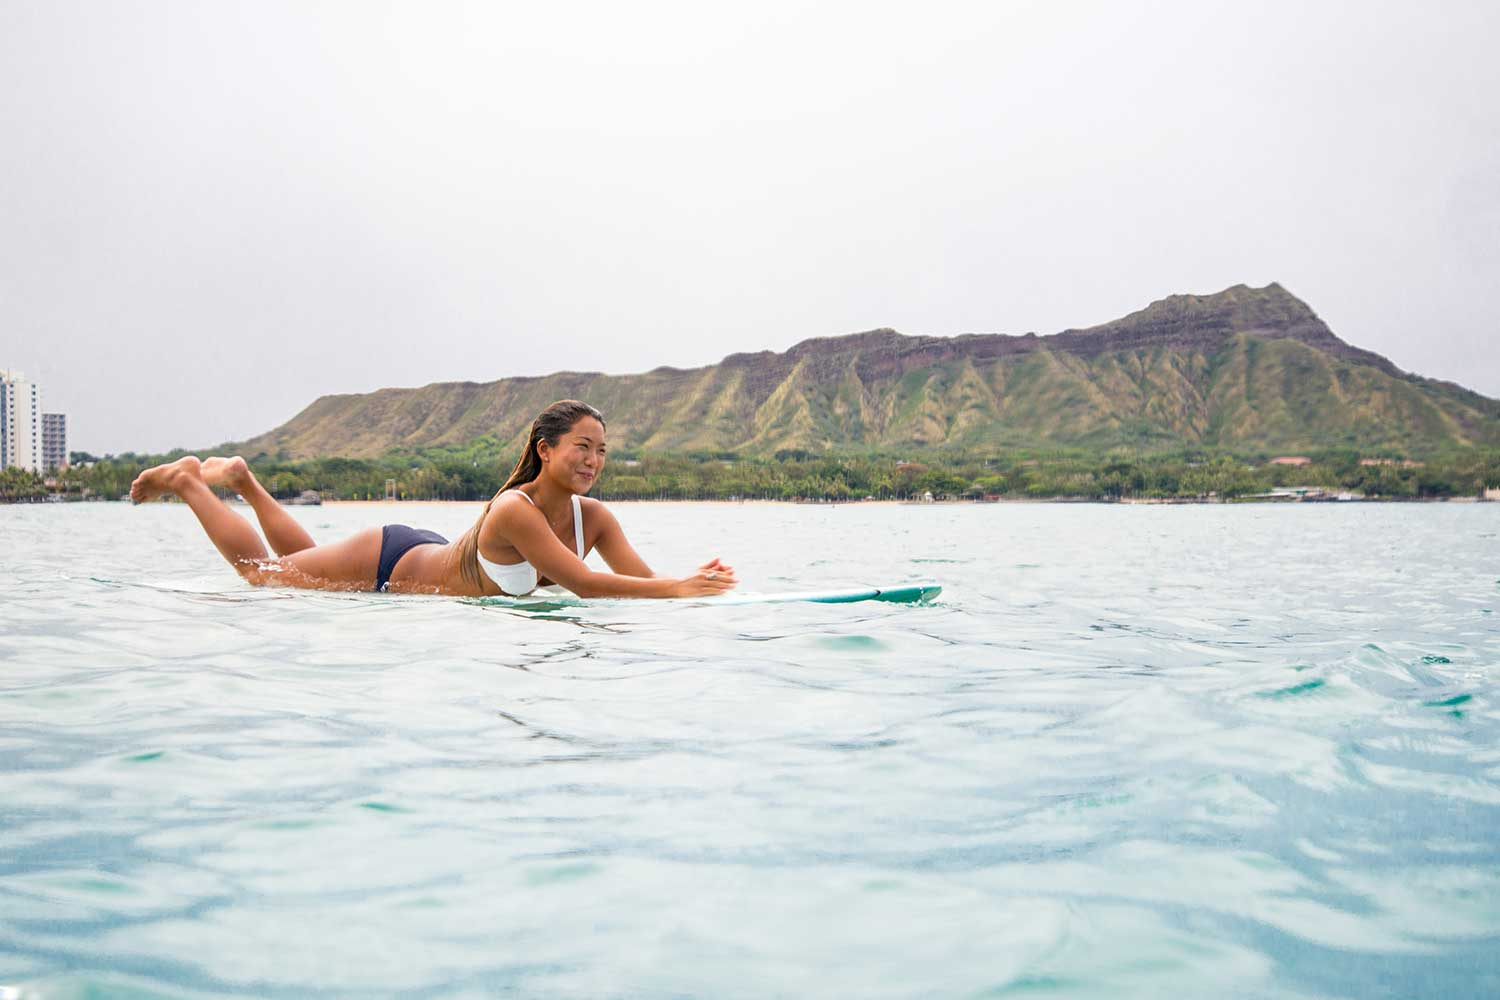 Nicolette Kim laying on surfboard in the ocean with Diamondhead in the background